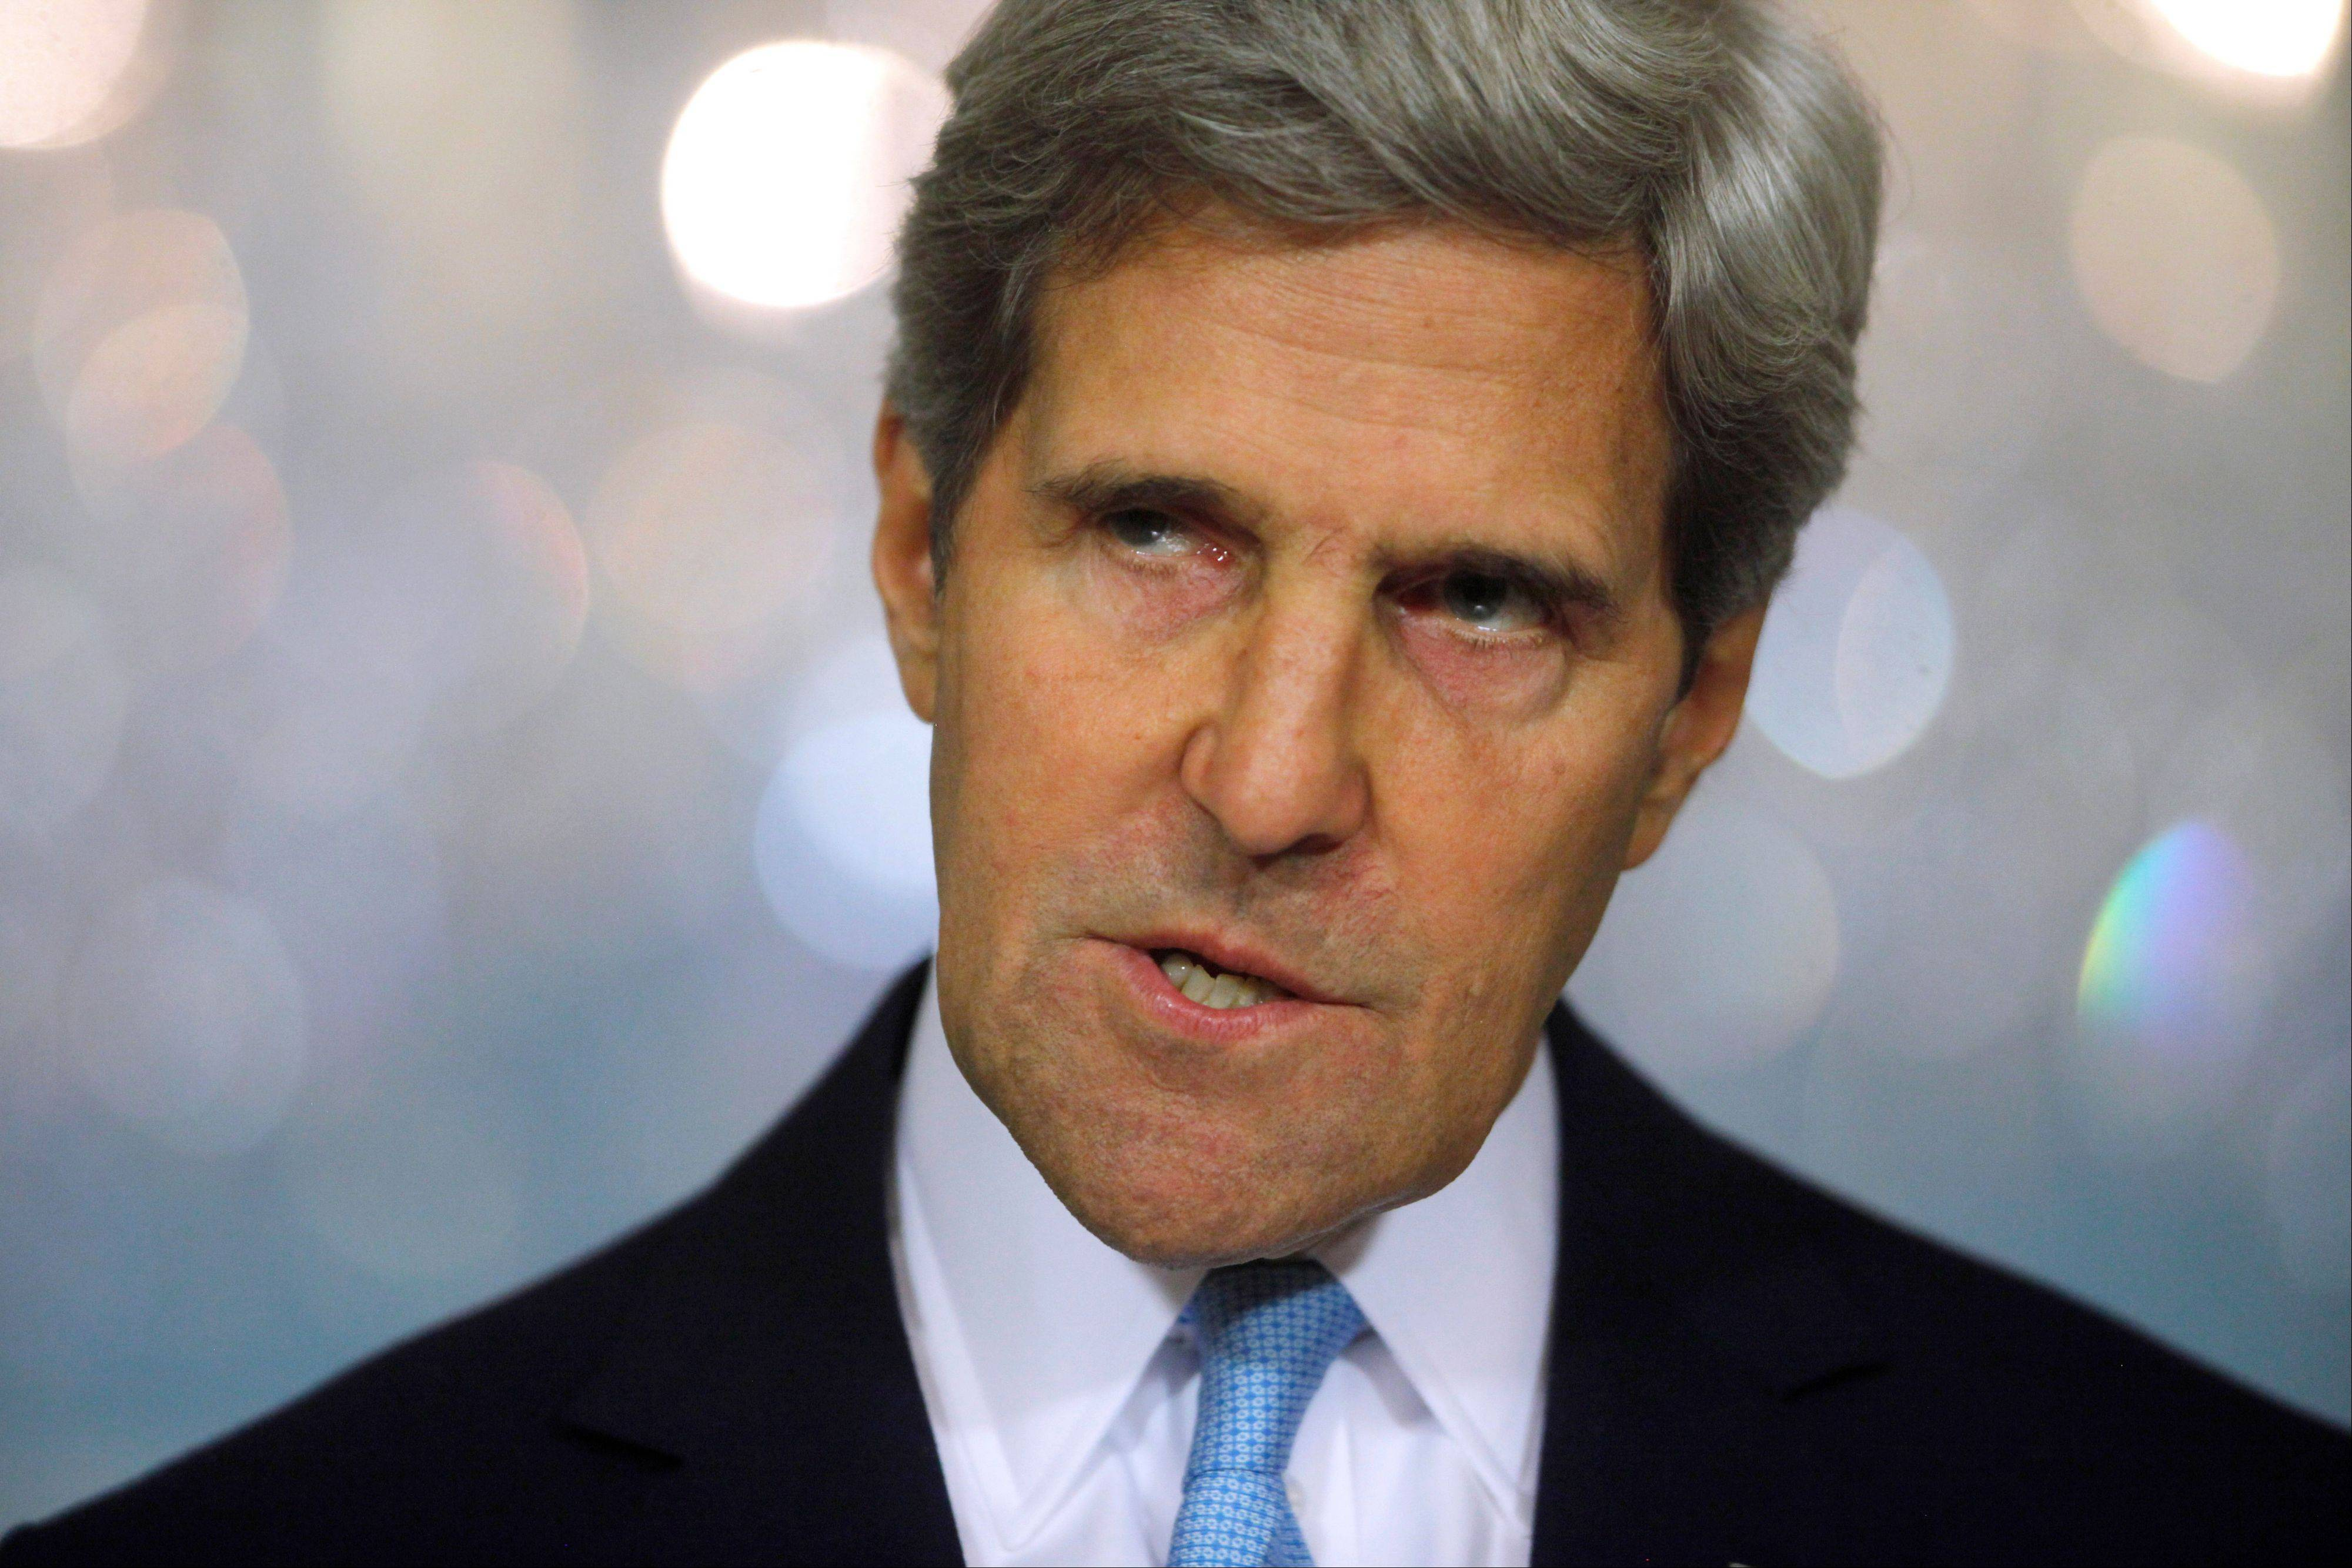 Secretary of State John Kerry makes a statement about Syria at the State Department in Washington, Friday, Aug. 30, 2013. Kerry said the U.S. knows, based on intelligence, that the Syrian regime carefully prepared for days to launch a chemical weapons attack.